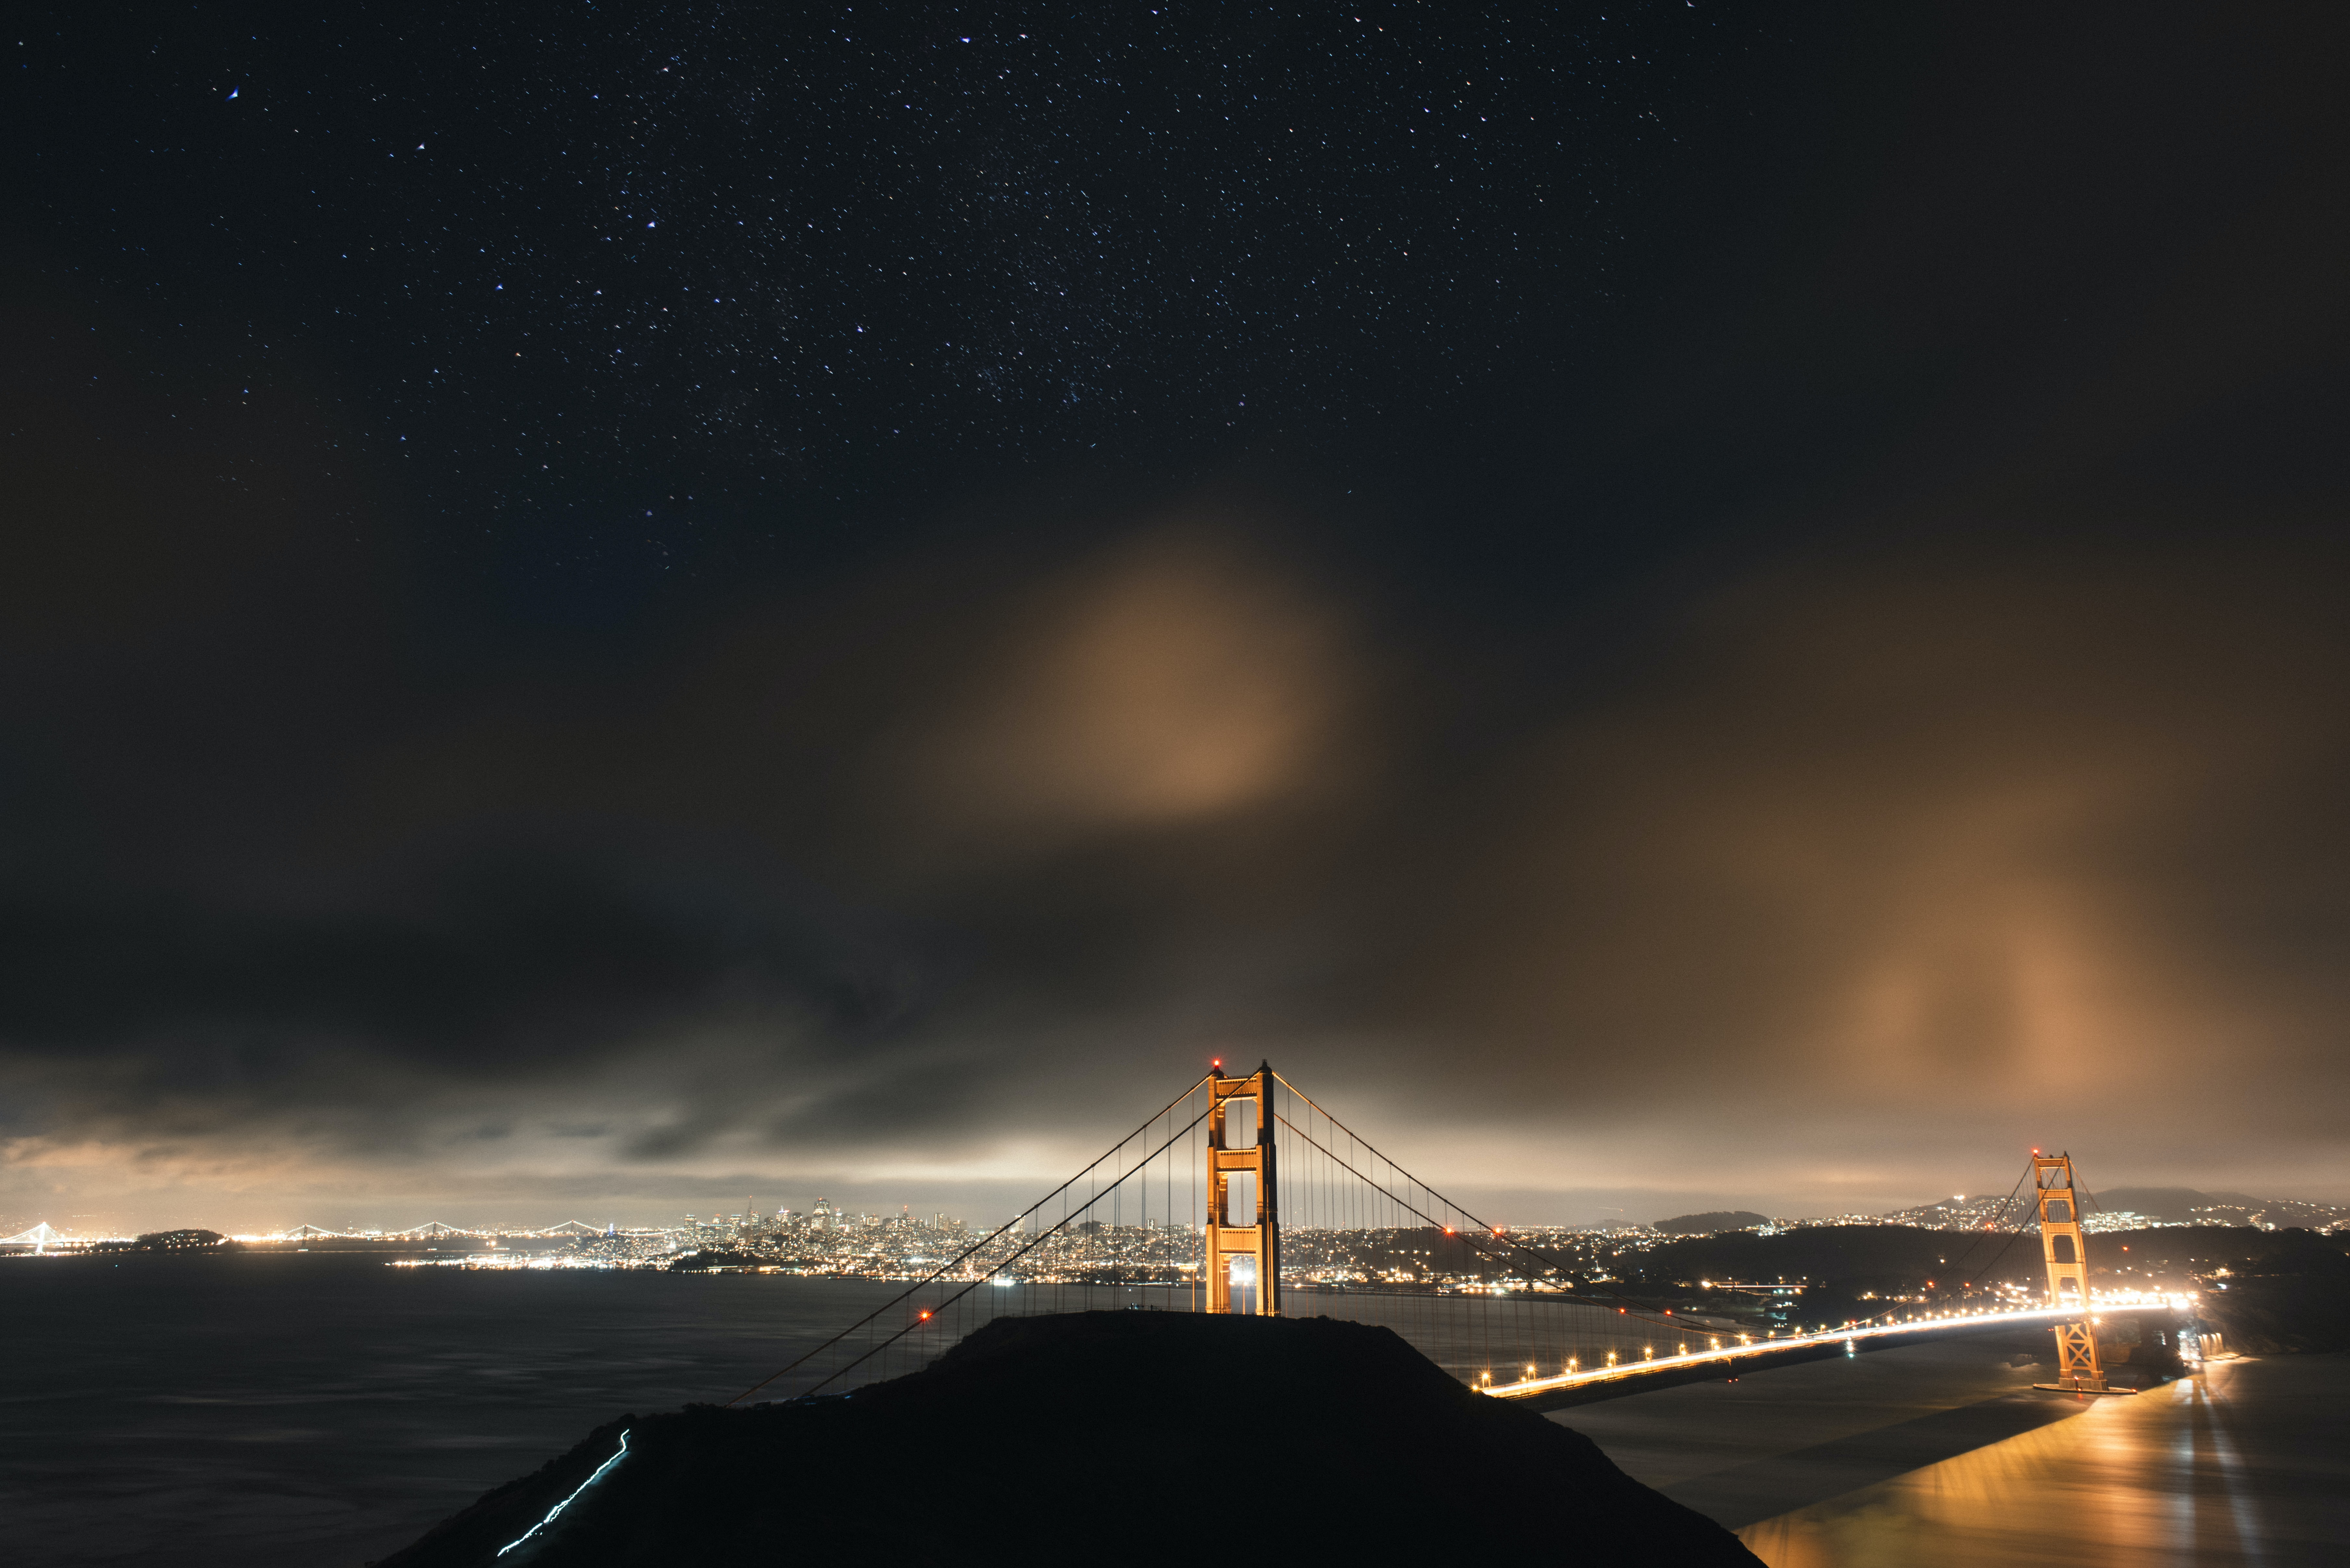 golden bridge during night time